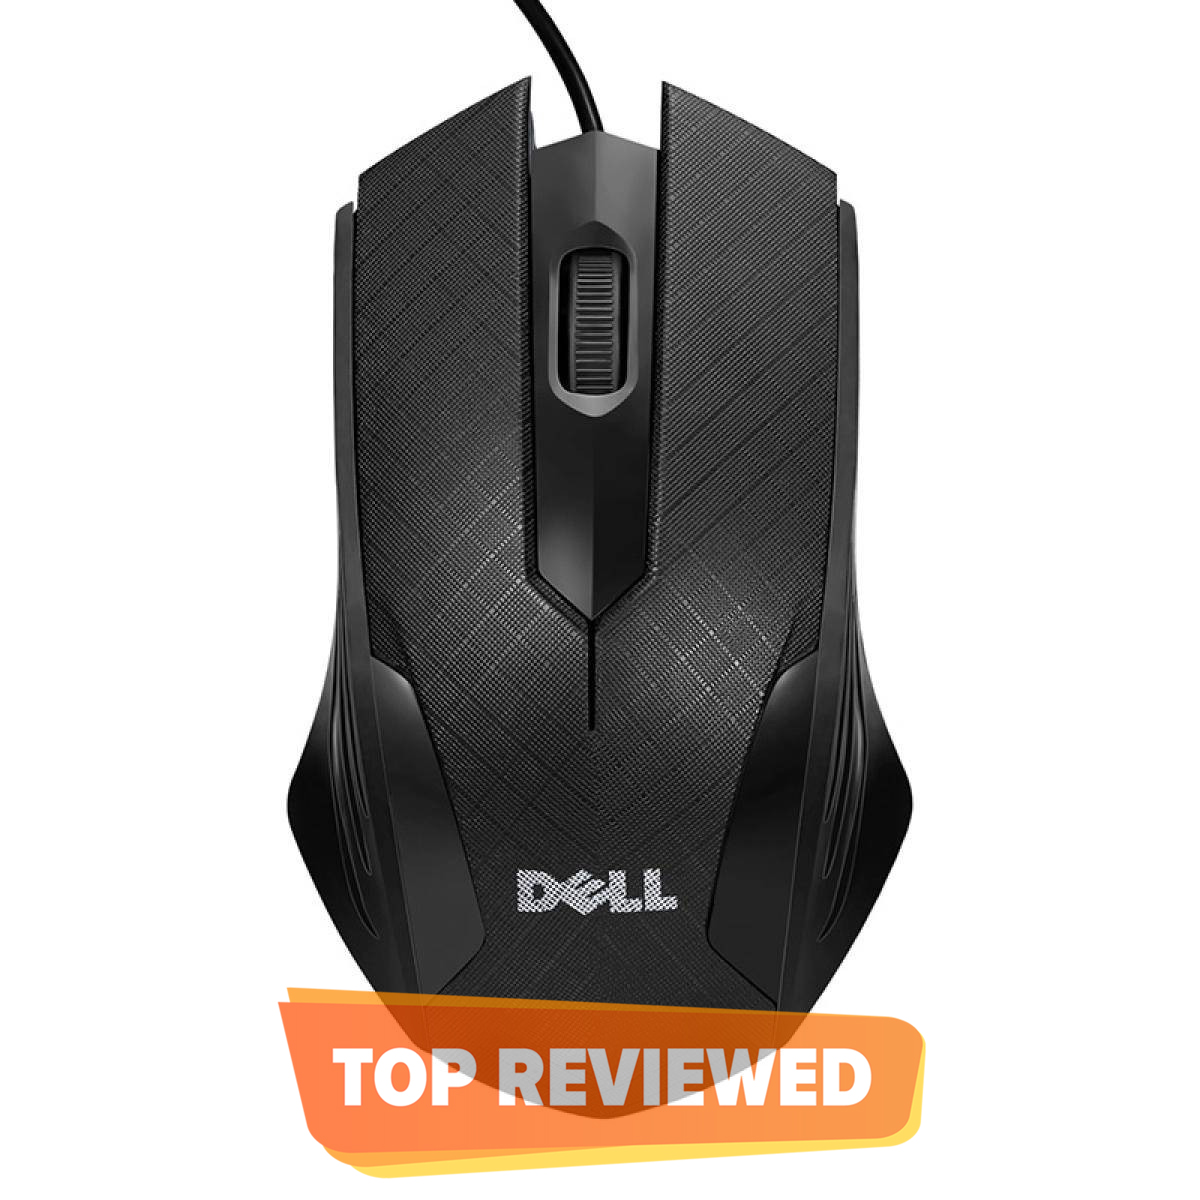 Optical Mouse For DVR, Laptop,Computer, DVR and Desktop Import from China